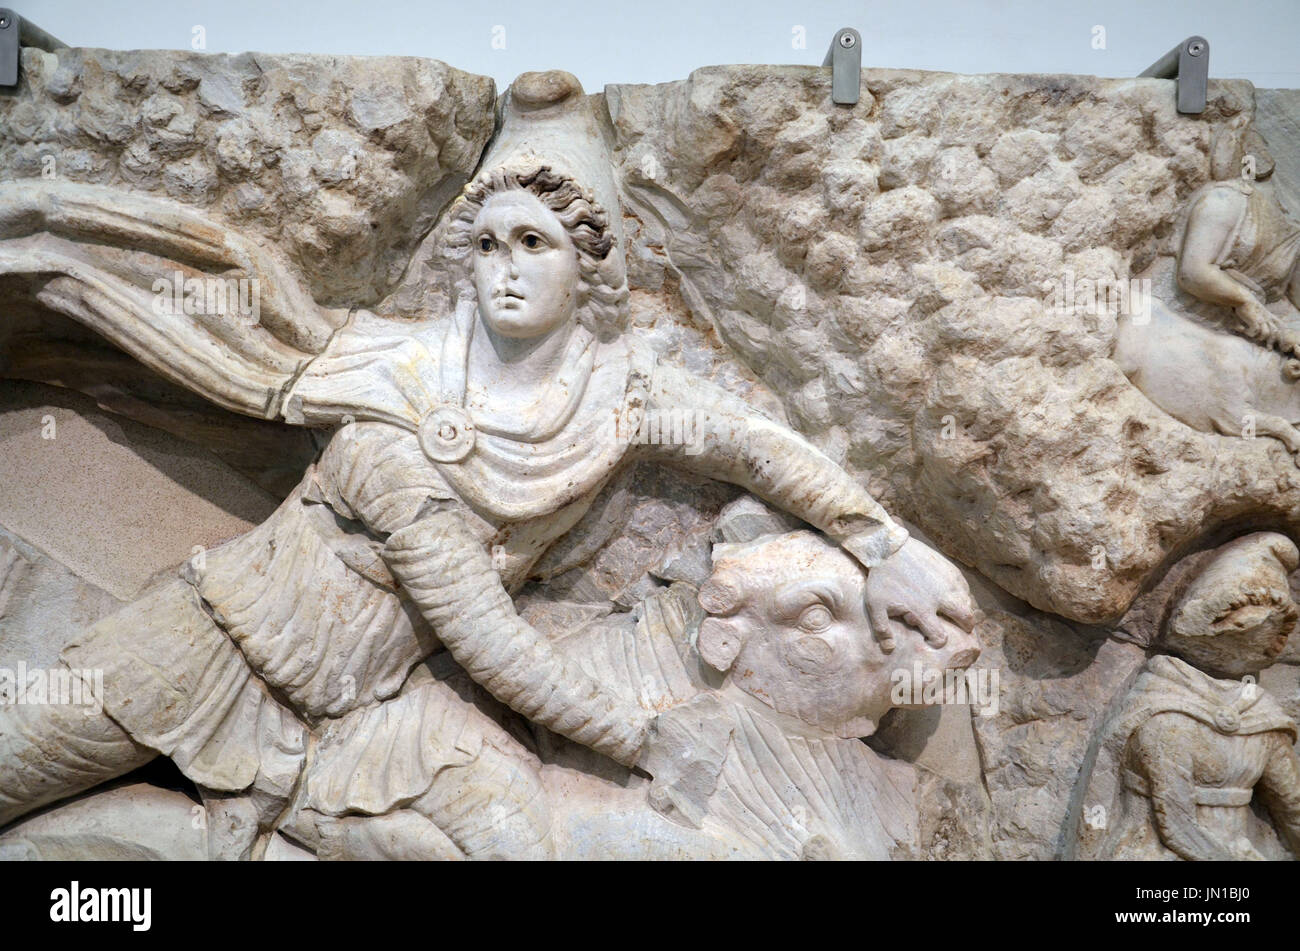 Rome, Italy. 13th July, 2017. HANDOUT - A fragment of the Mithras relief, which has been lost until recently, is presented in Rome, Italy, 13 July 2017. Italian investigators have found the central piece of the precious relief, which is currently owned by the State Museum Karlsruhe, in Sardinia. It is currently on a ten year loan to the city of Rome. (ATTENTION EDITORS: EDITORIAL USE ONLY IN CONNECTION WITH CURRENT REPORTING/MANDATORY CREDIT: 'Rosario Ansalone/Badisches Landesmuseum/dpa') Photo: Rosario Ansalone/Badisches Landesmuseum/dpa/Alamy Live News - Stock Image